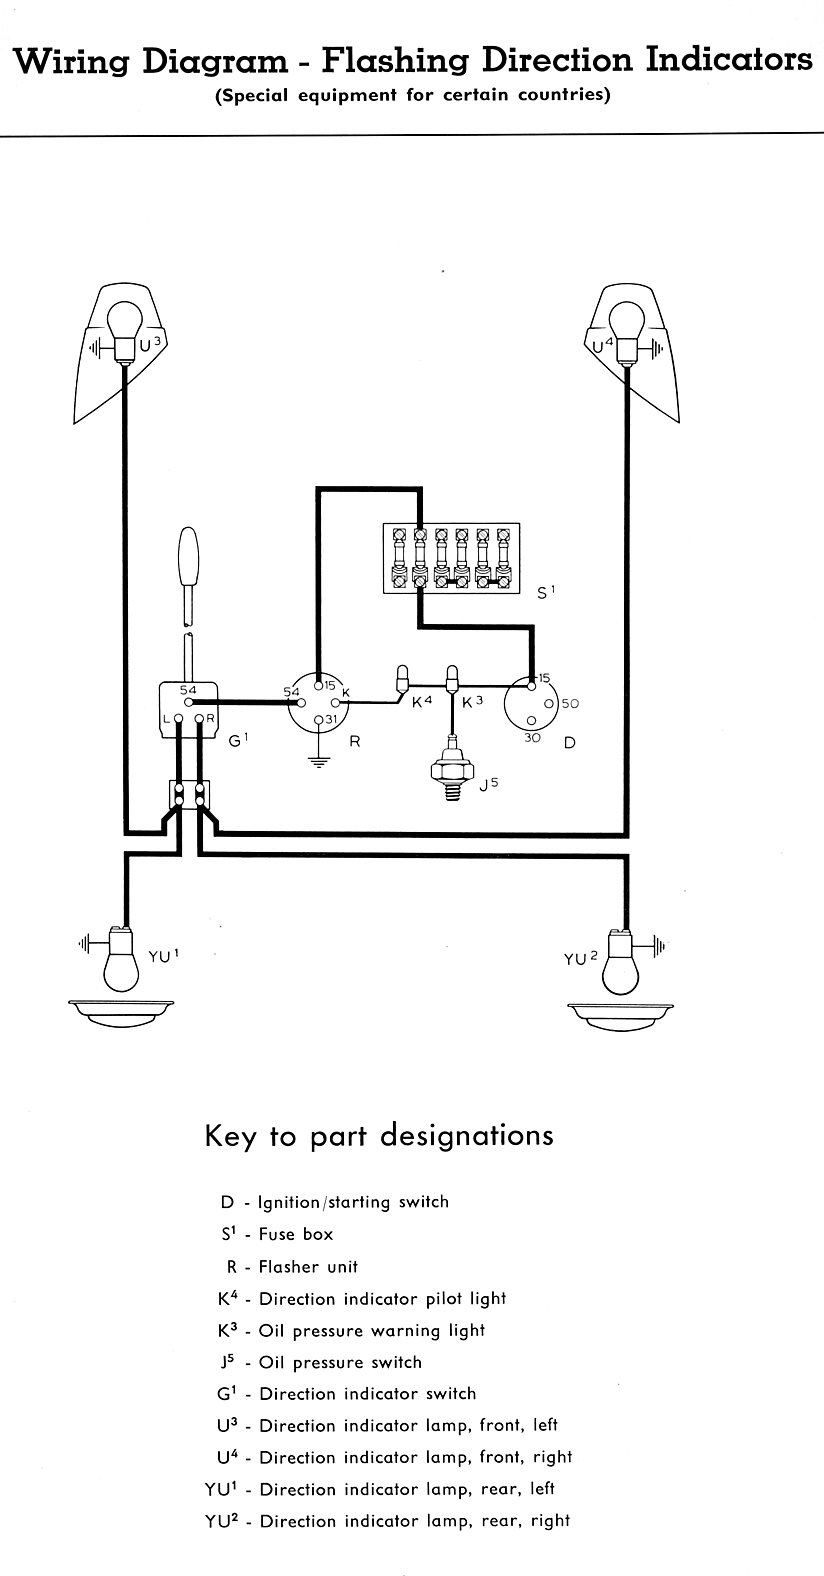 hight resolution of 1966 porsche 912 wiring diagram schematic wiring library rh 88 codingcommunity de wiring diagram for 1985 porsche 911 porsche 912 engine diagram